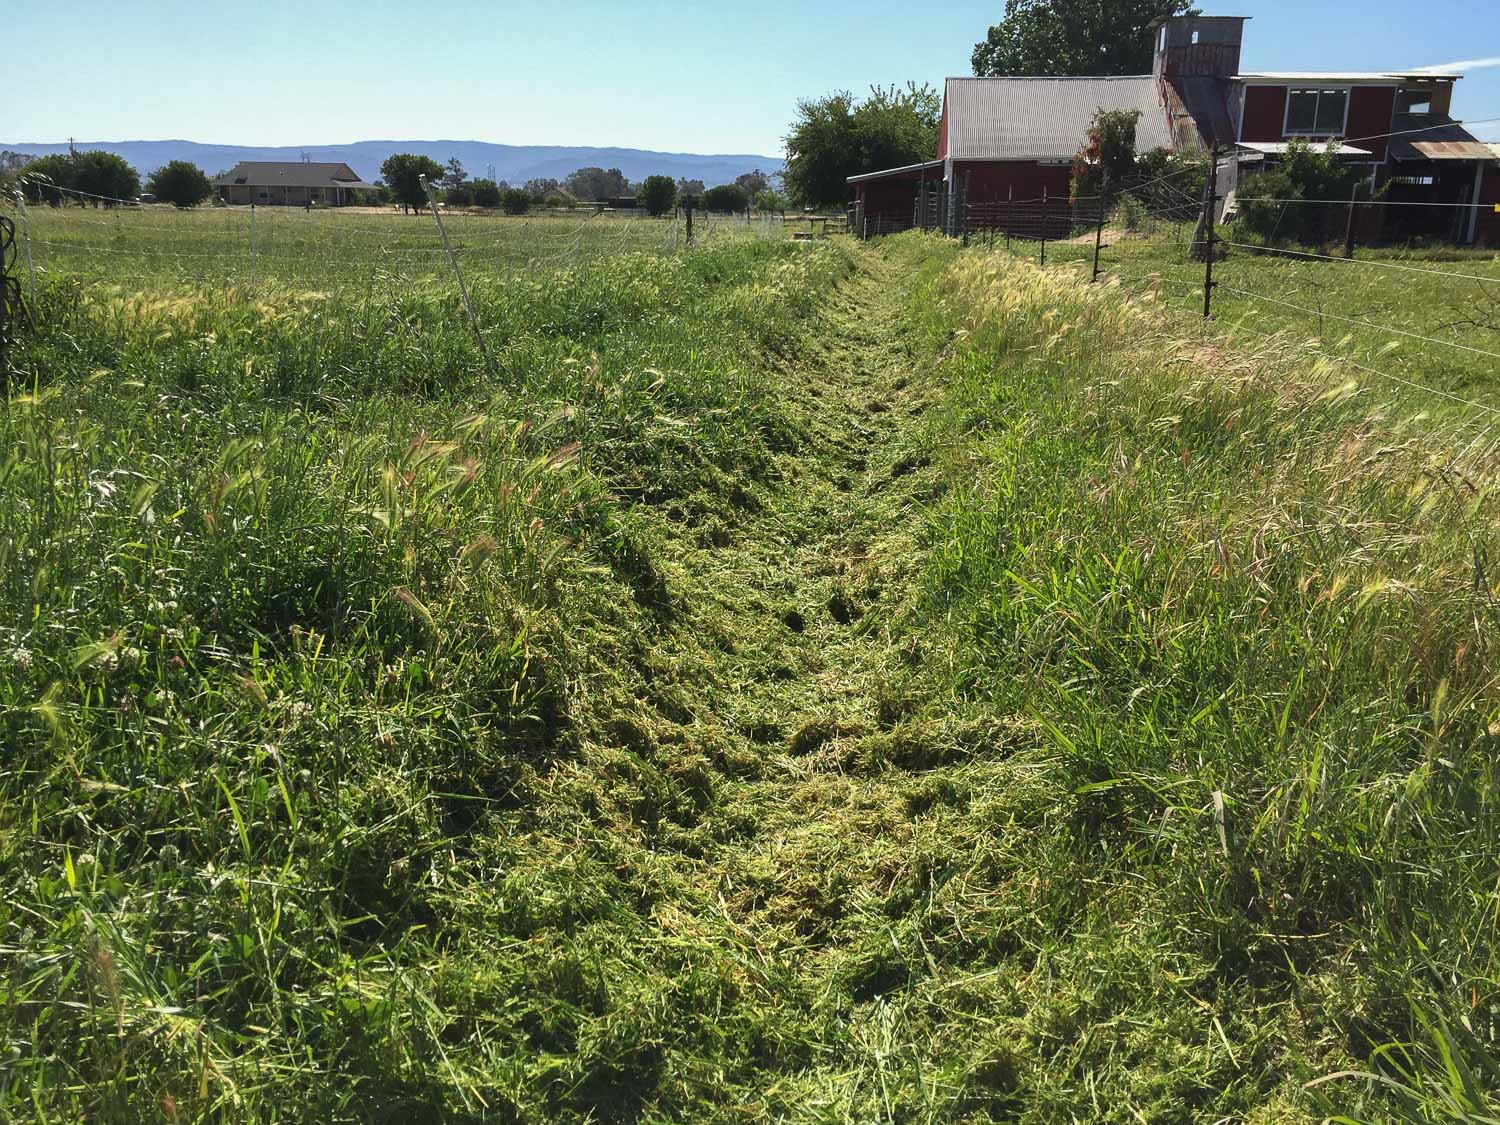 Irrigation ditch after weed eating